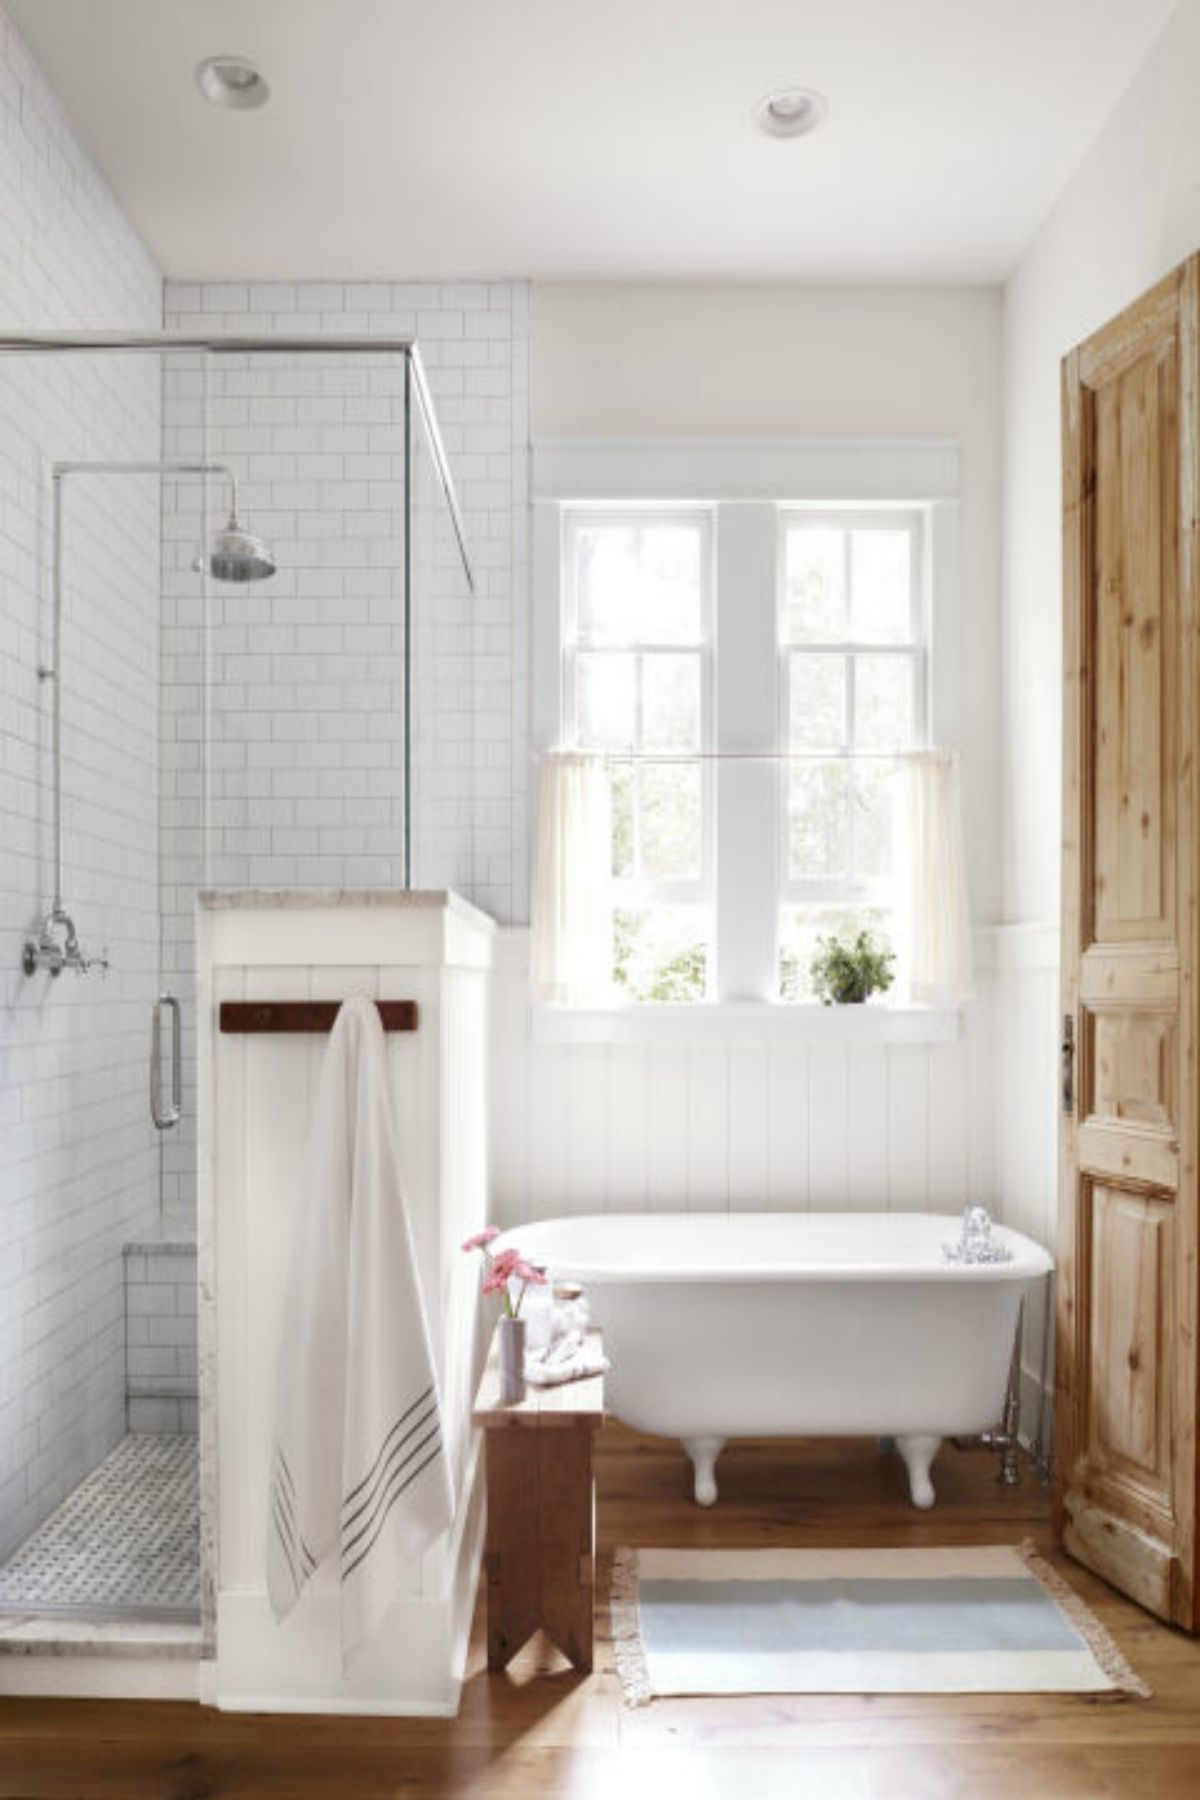 30 Ways to Decorate Your Bathroom With White | Natural light, Woods ...